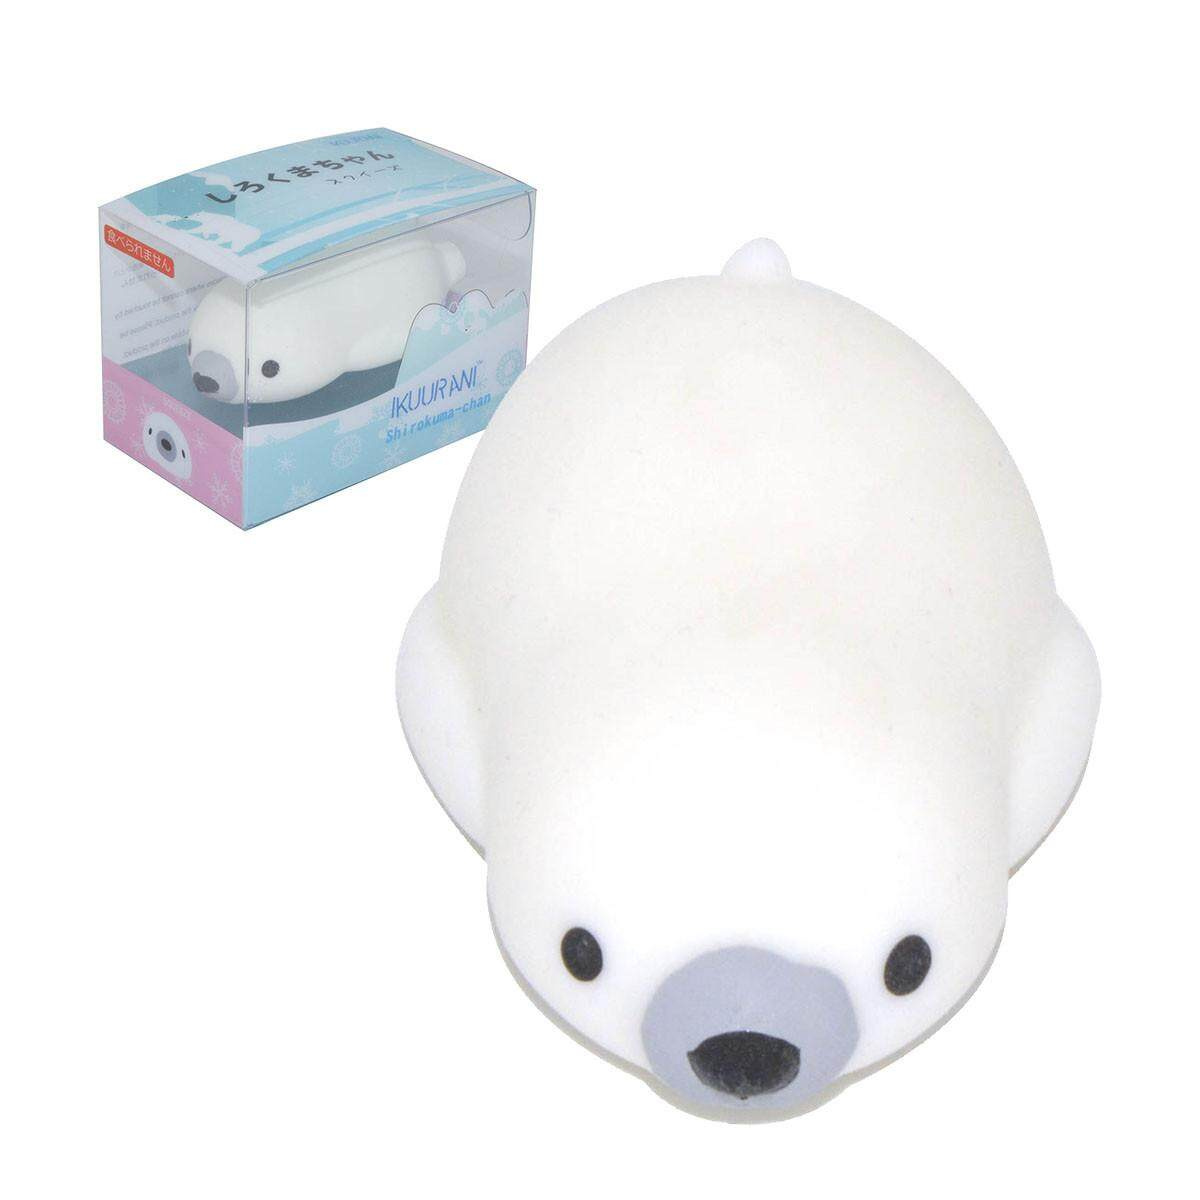 Ikuurani Polar Bear Mochi Squishy Squeeze 7.5x4x2cm Original Packaging Collection Gift Decor Toy By Freebang.